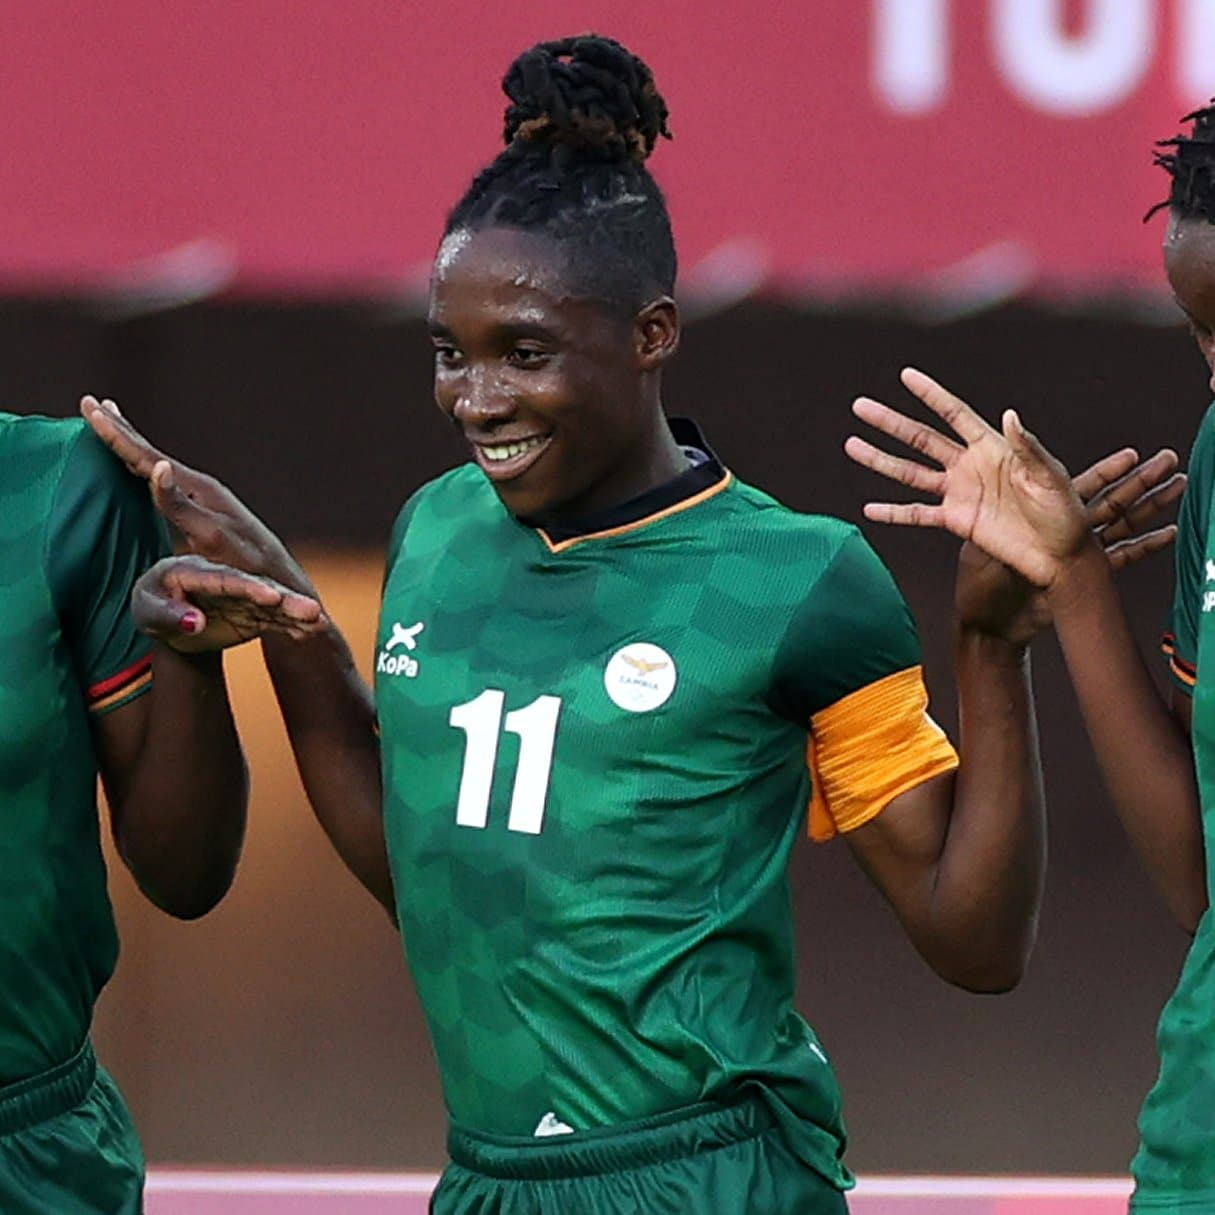 Tokyo 2020 Football: Banda Makes Olympic History Again As Zambia Hold China In Eight-Goal Thriller